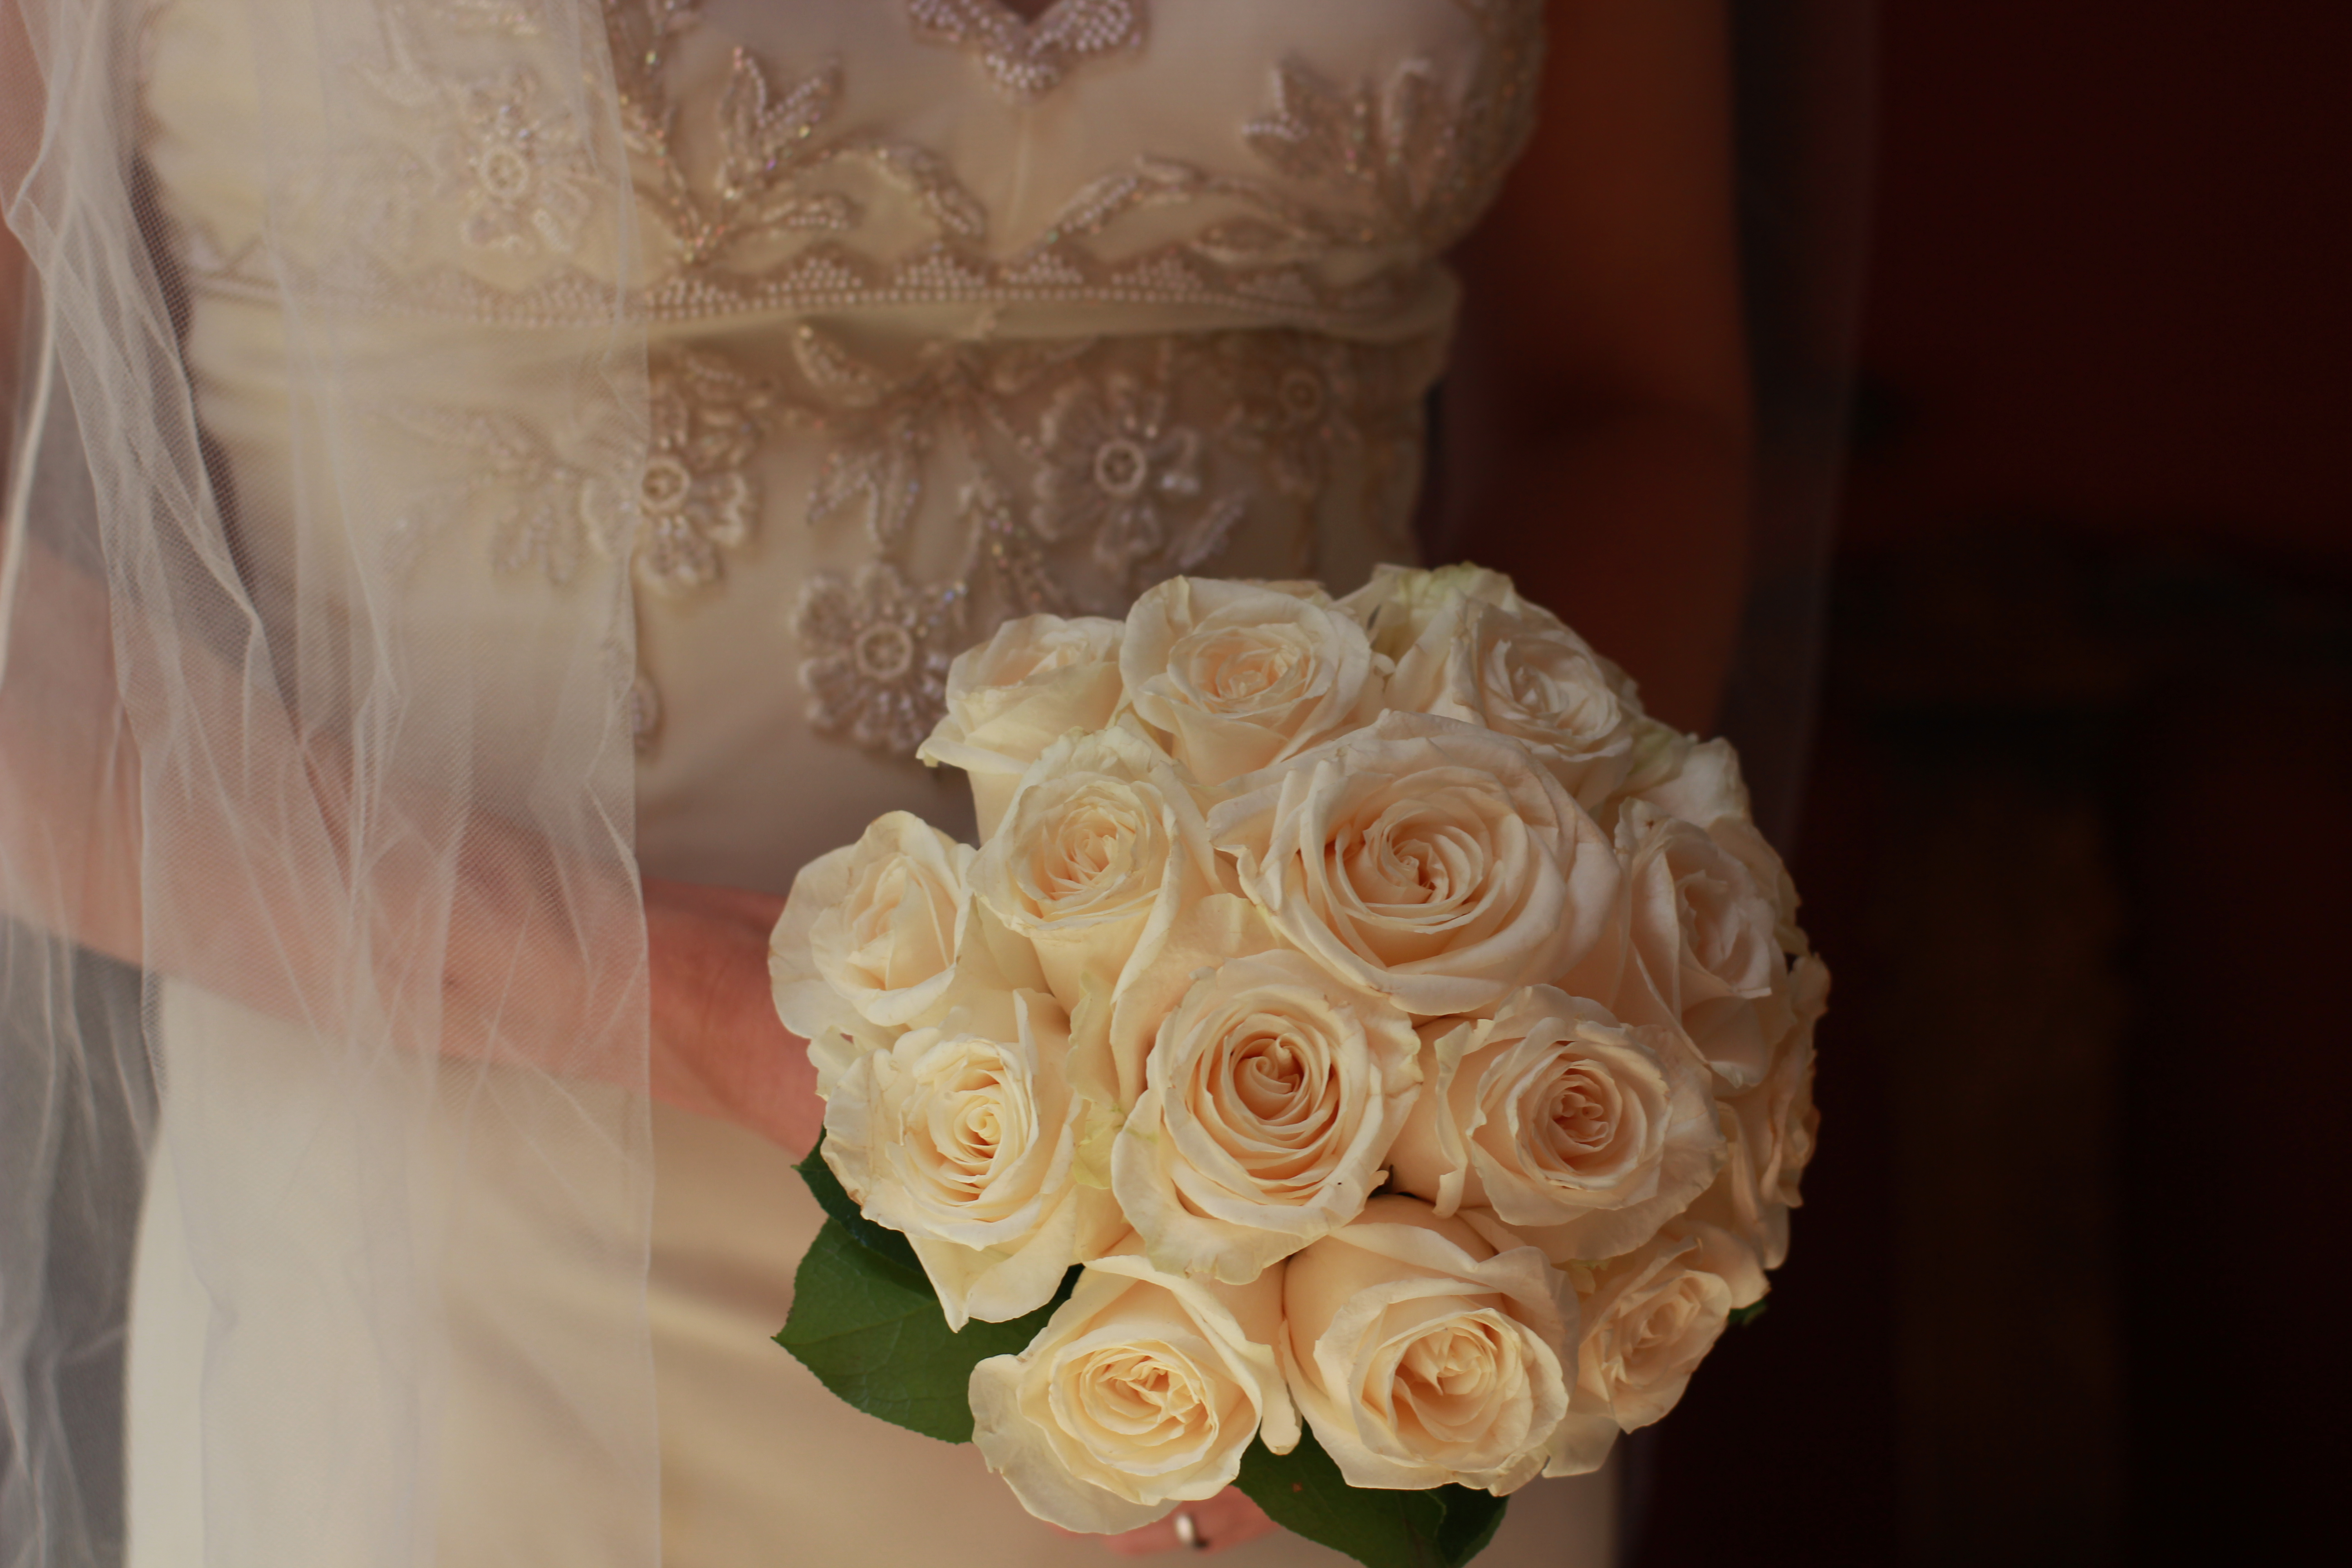 How to create a hand wired bouquet roots to blooms my gold standard hand wired bouquet with cream roses at the peak of izmirmasajfo